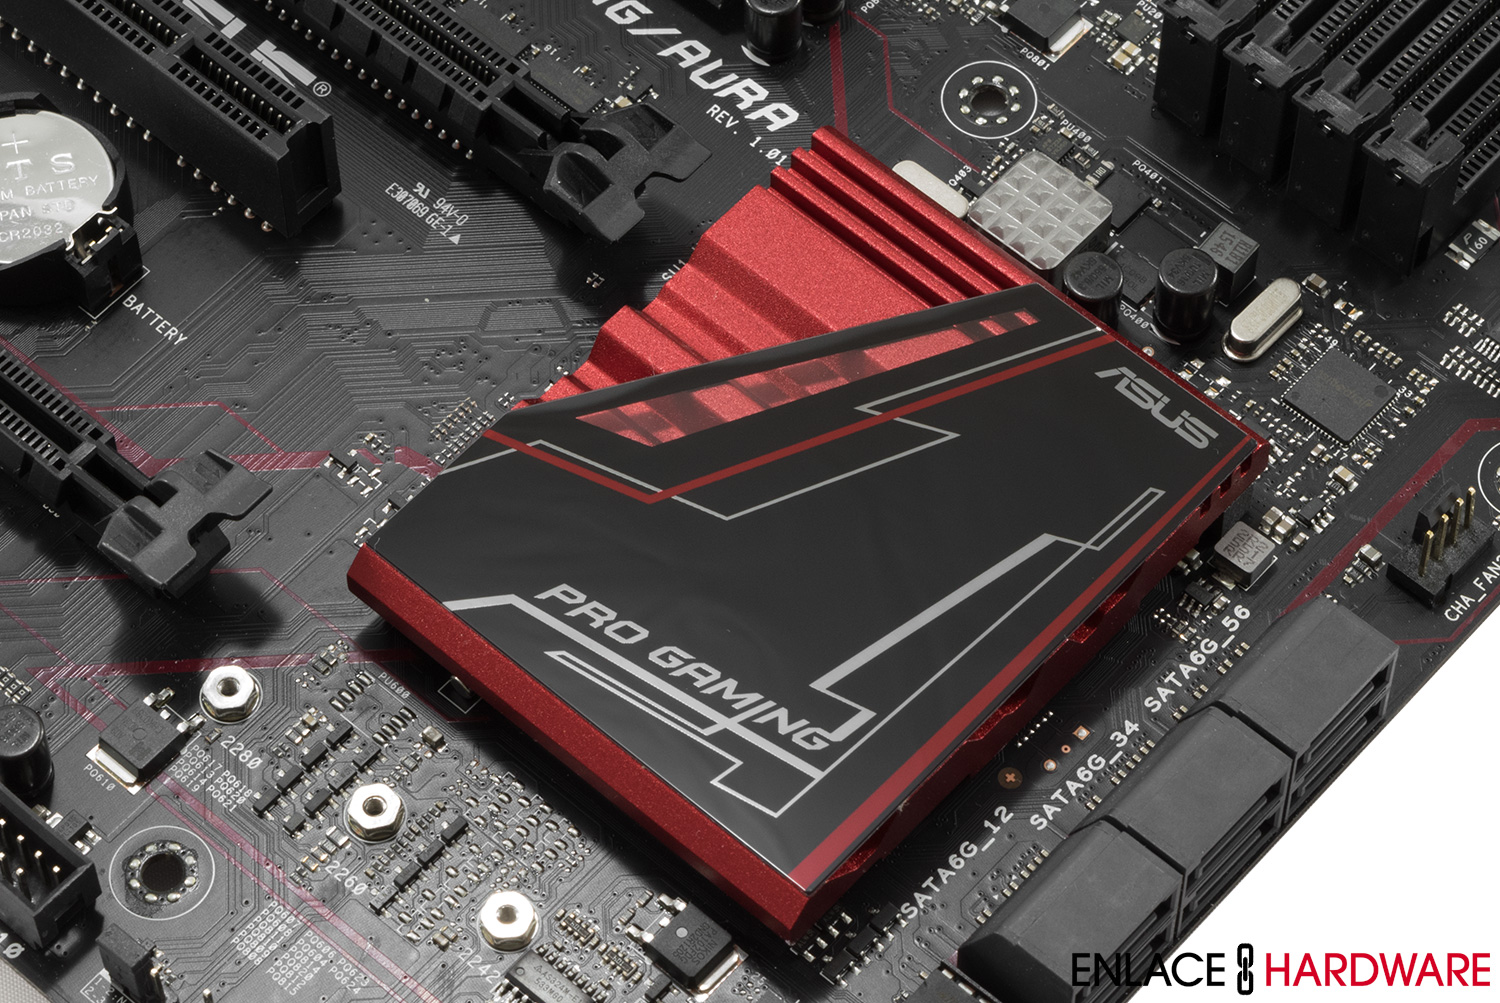 ASUS 970 Pro Gaming Aura Review 9